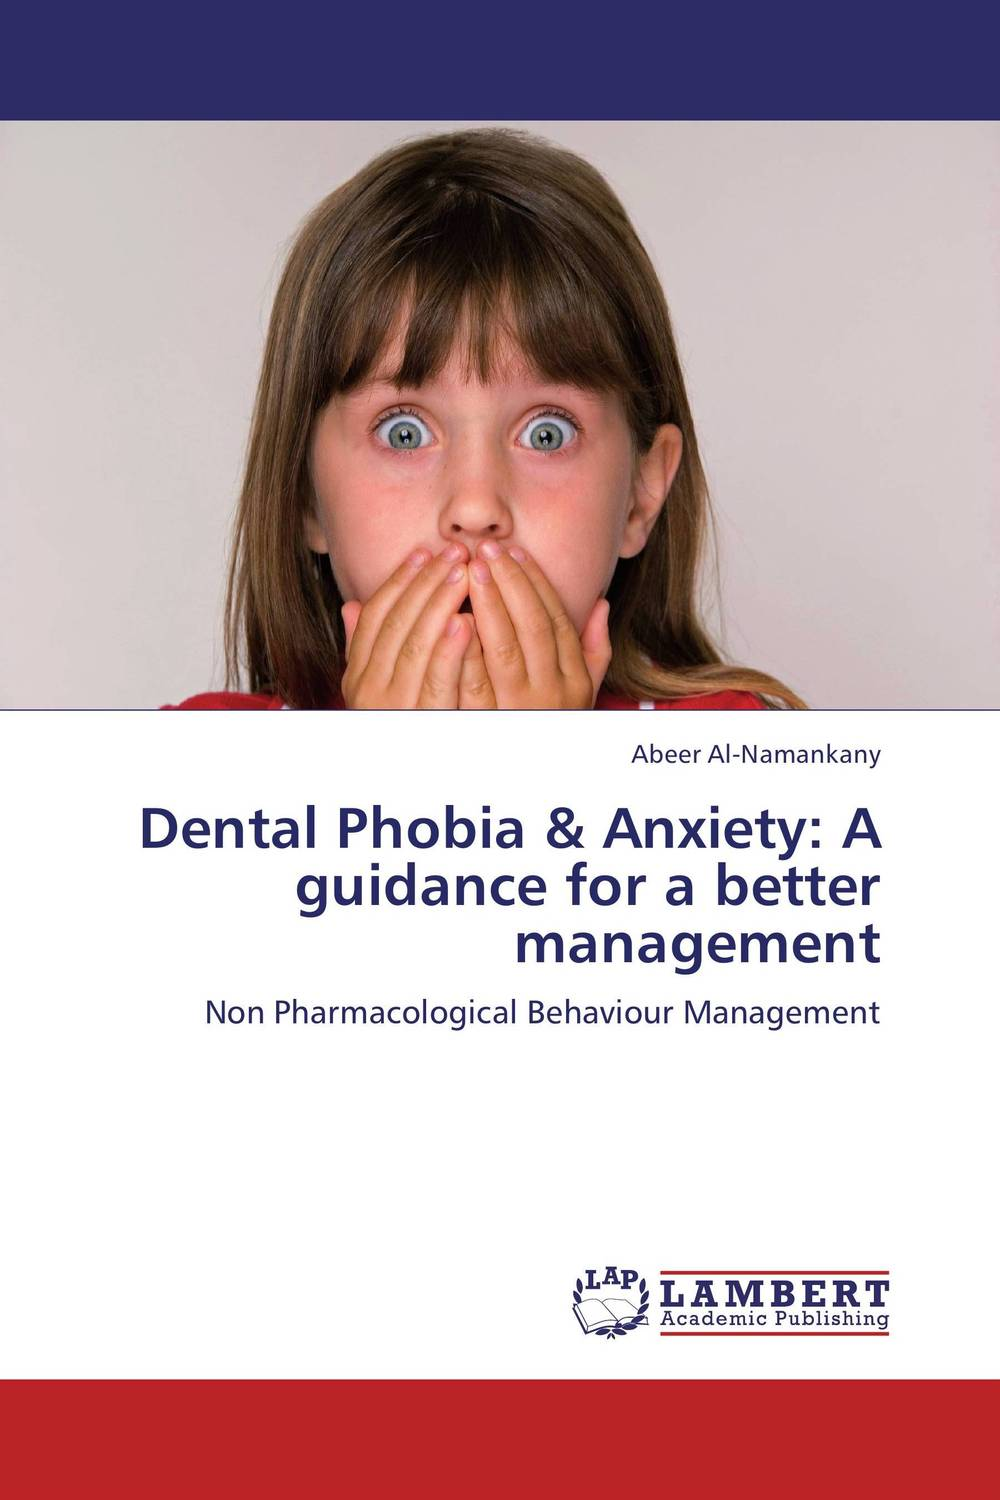 Dental Phobia & Anxiety: A guidance for a better management